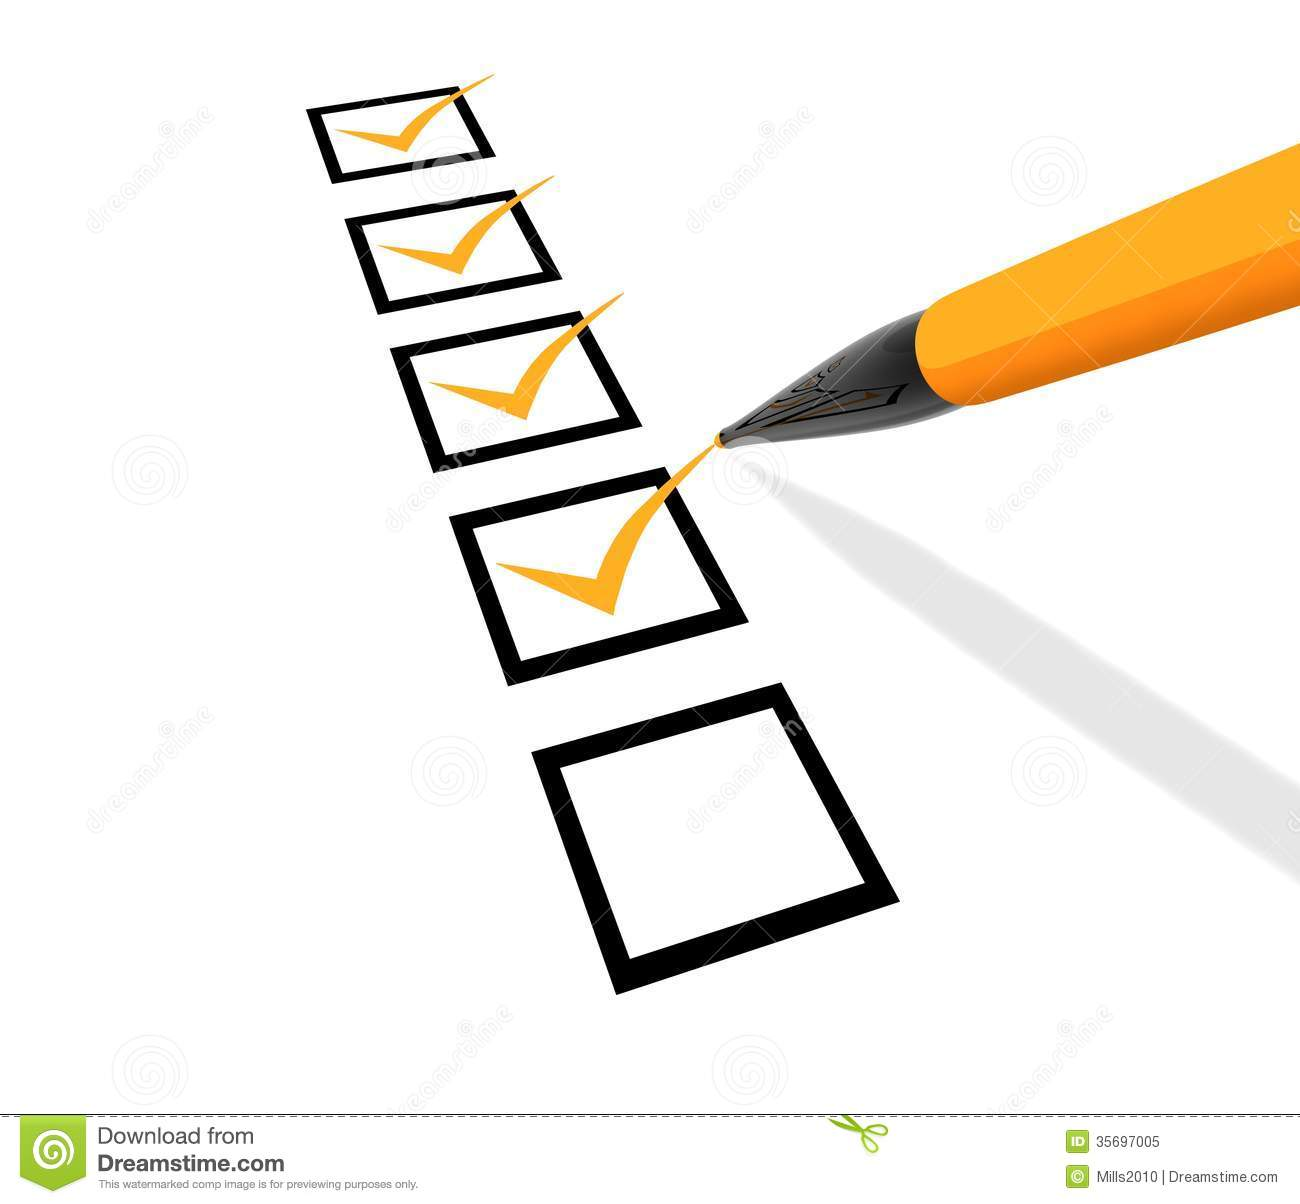 Checklist Royalty Free Stock Photo - Image: 35697005